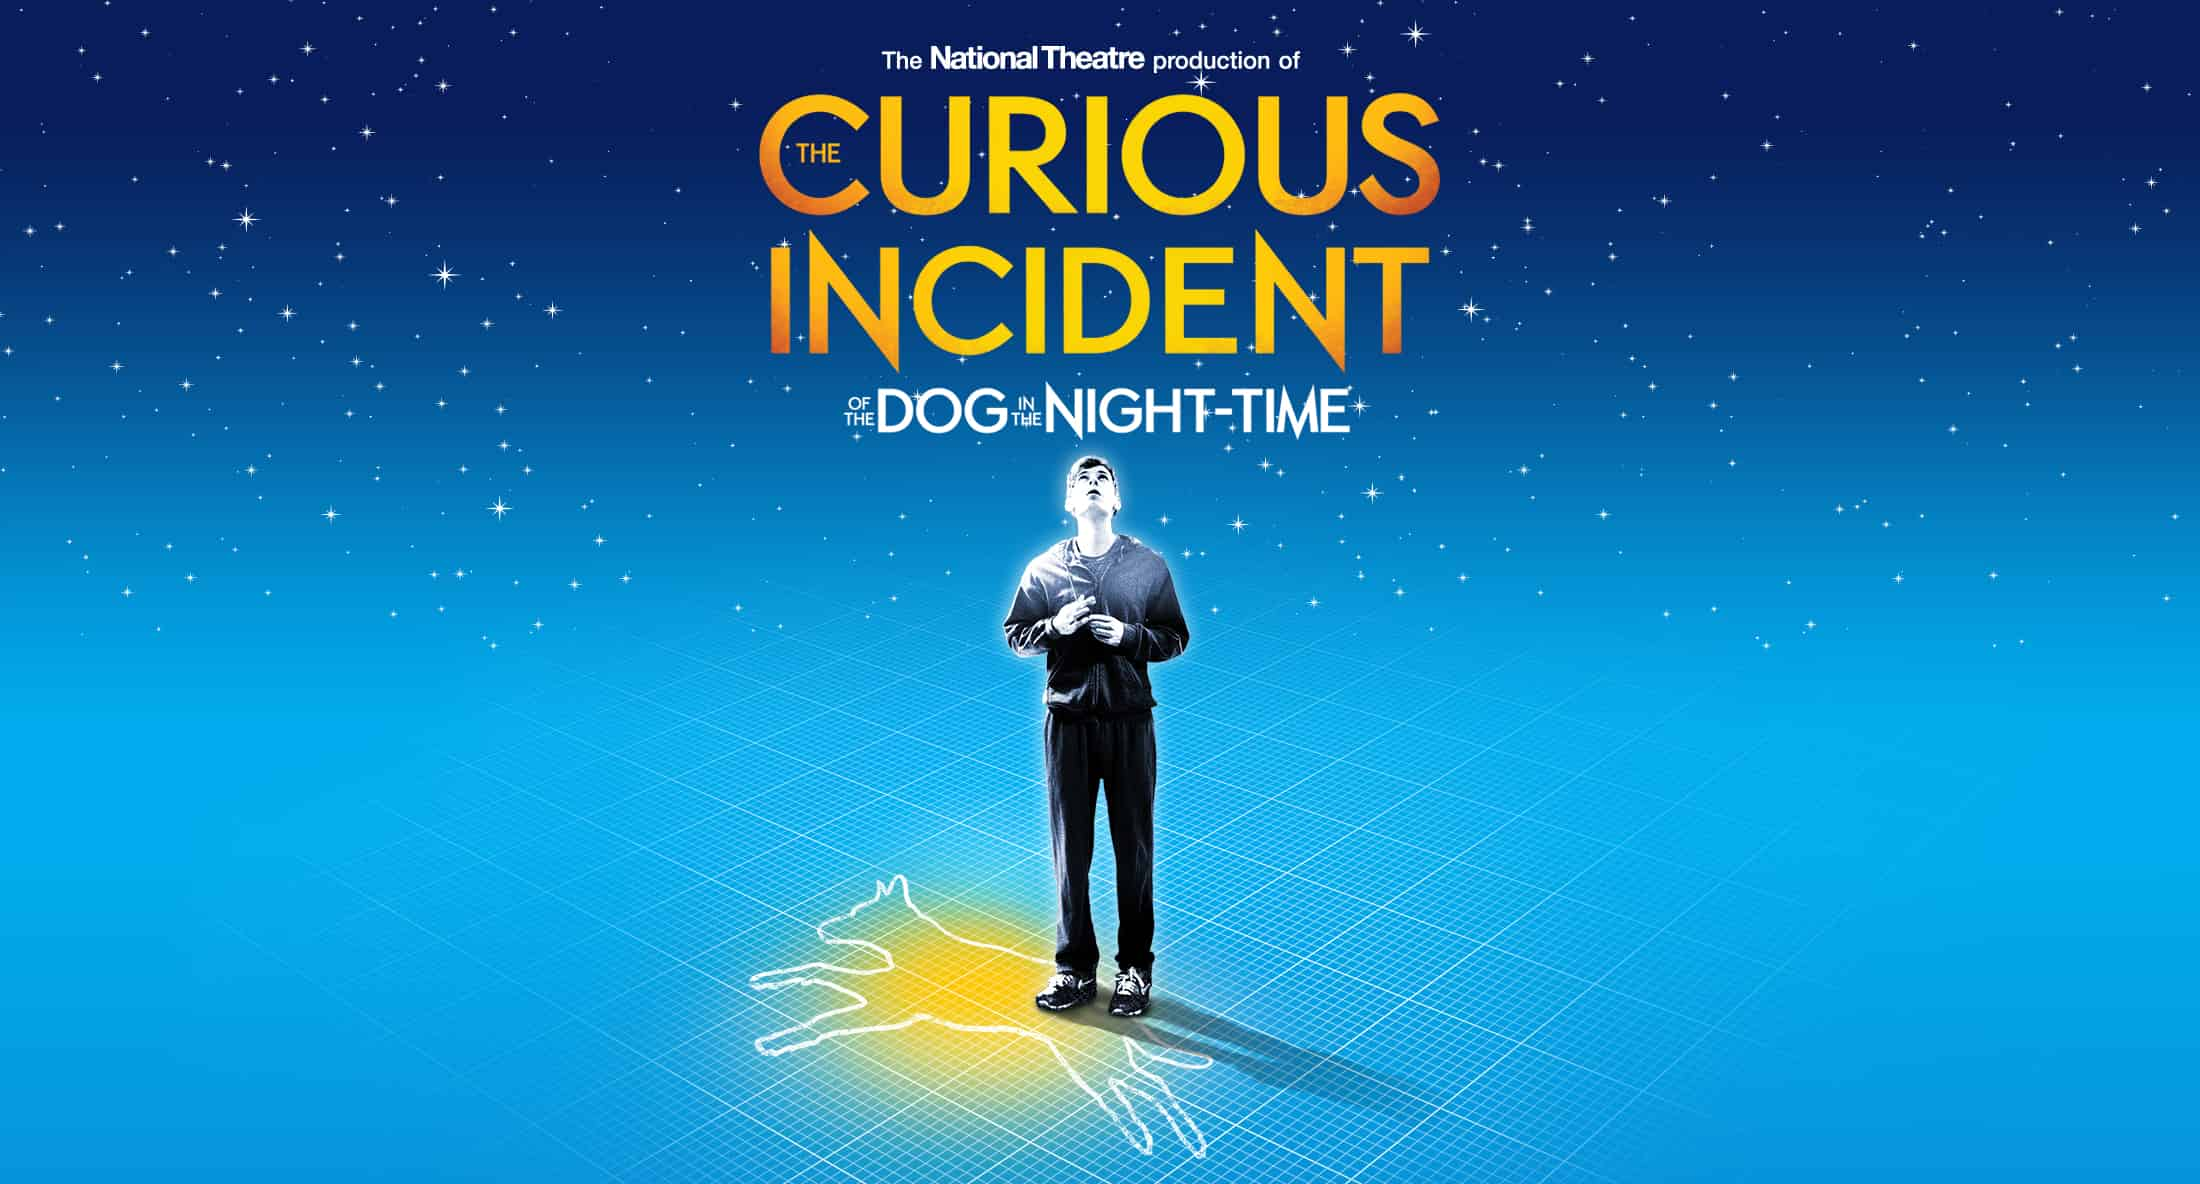 curious incident of the dog in the night time review essay The best-selling novel the curious incident of the dog in the night-time (2003) received multiple awards and high praise for its portrayal of a disabled protagonist, christopher boone, who is usually described as having asperger's/autism.